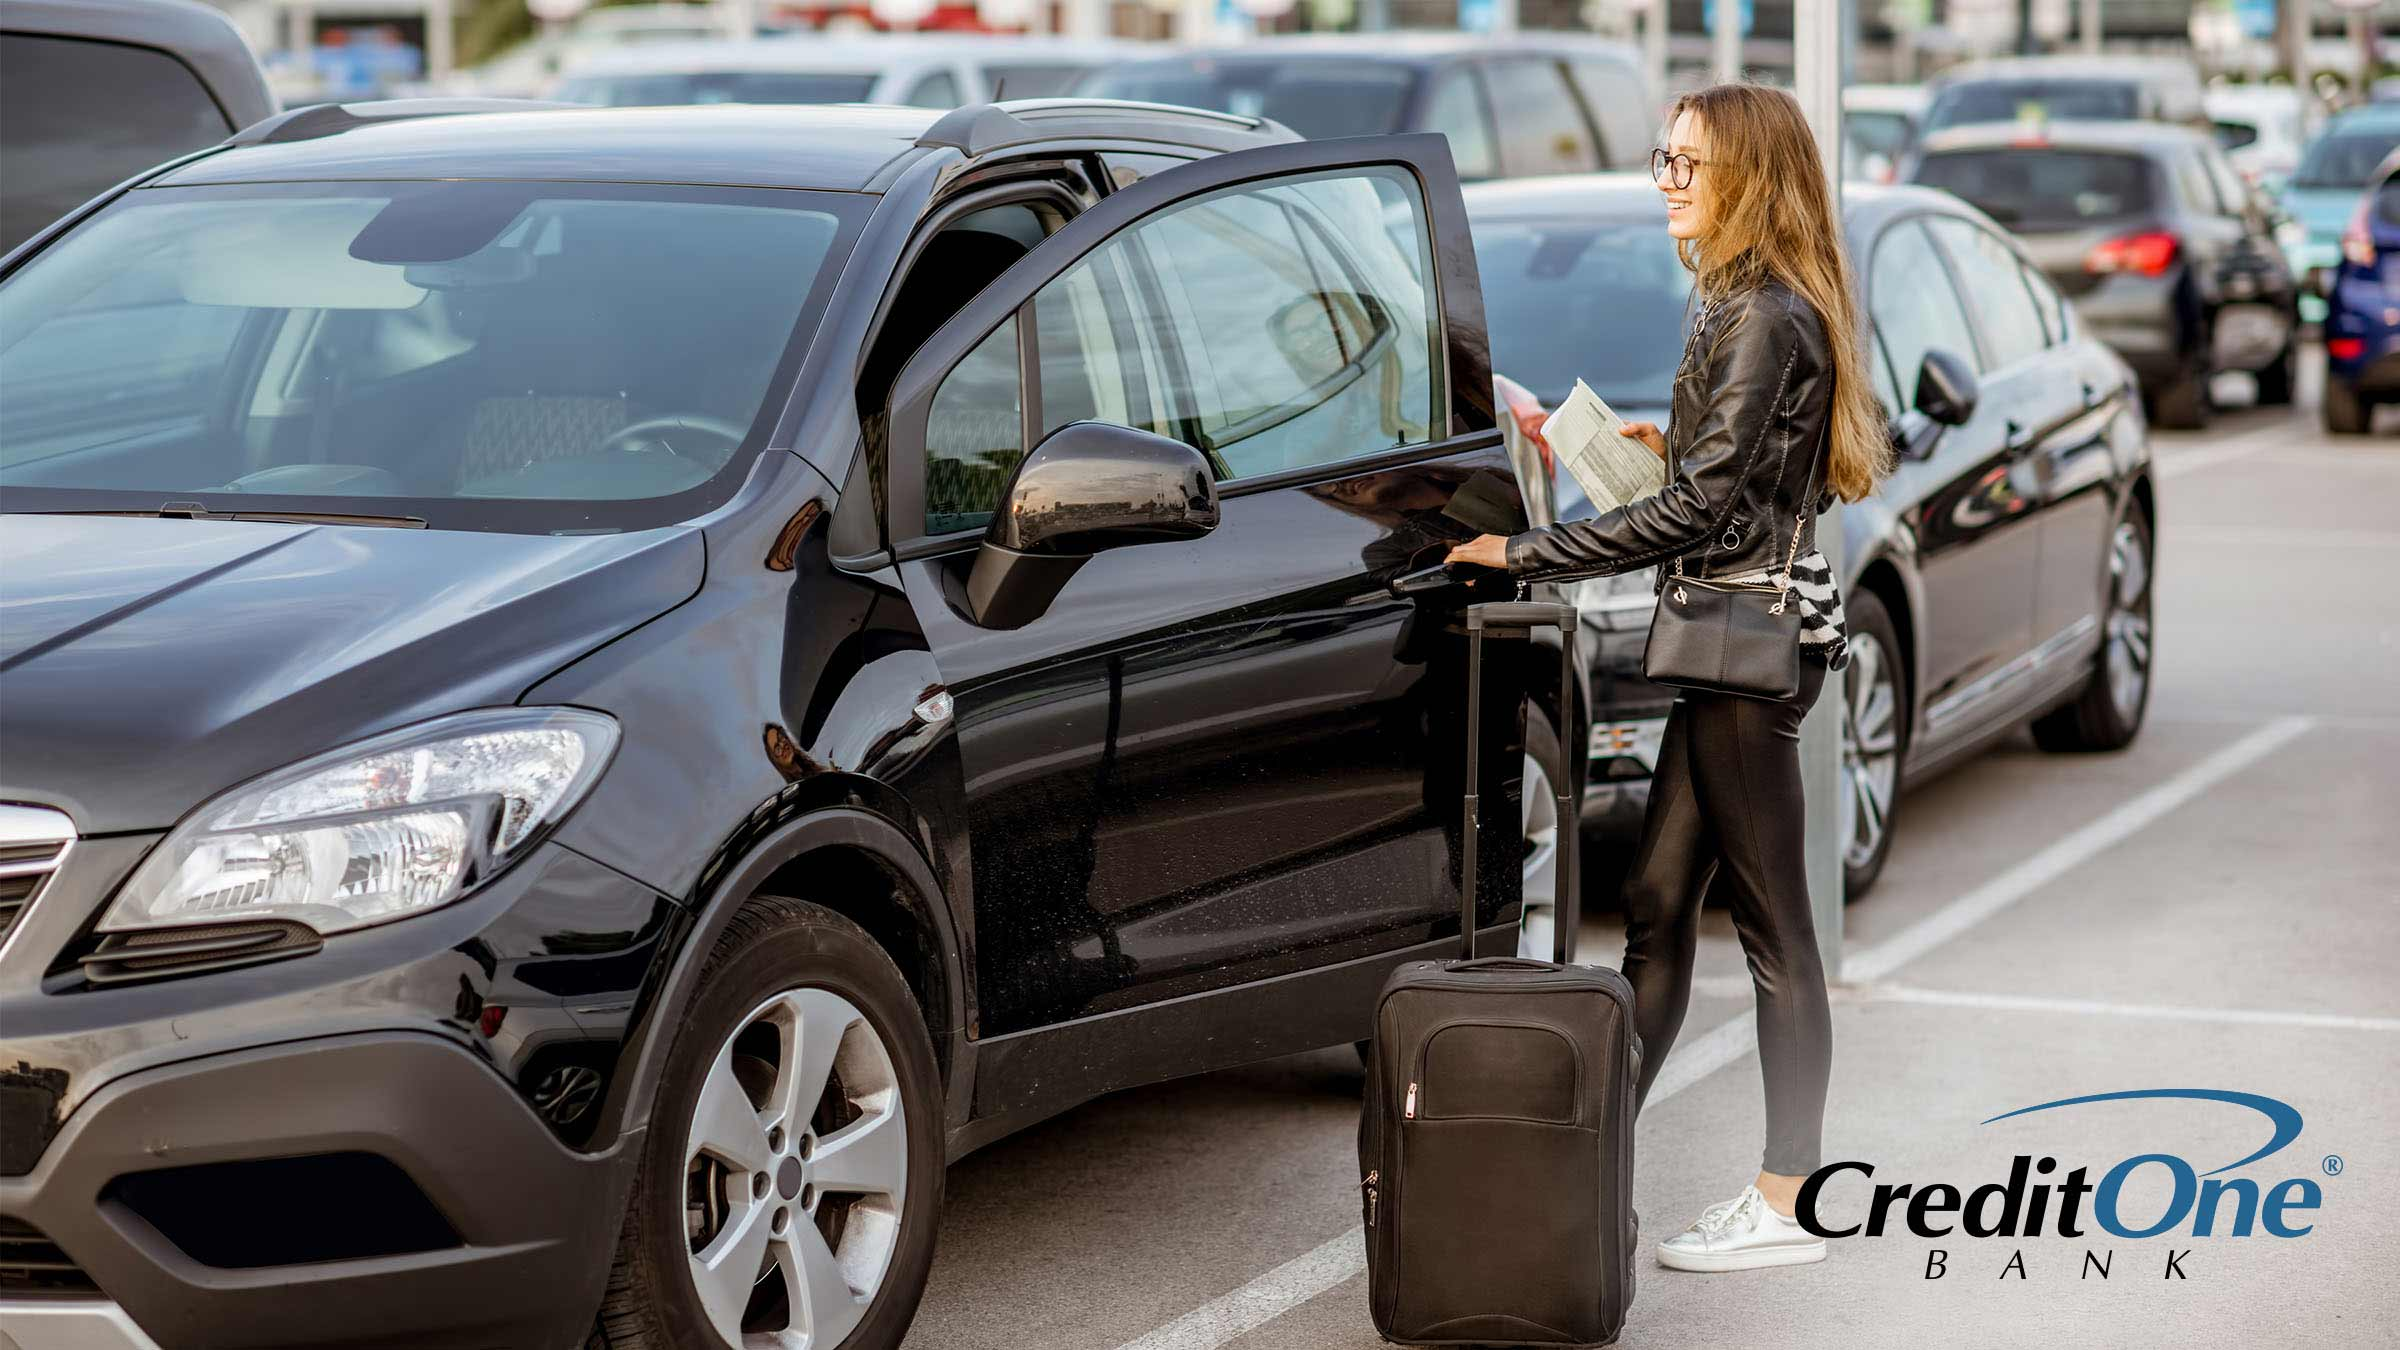 Using Credit Cards for Car Rentals